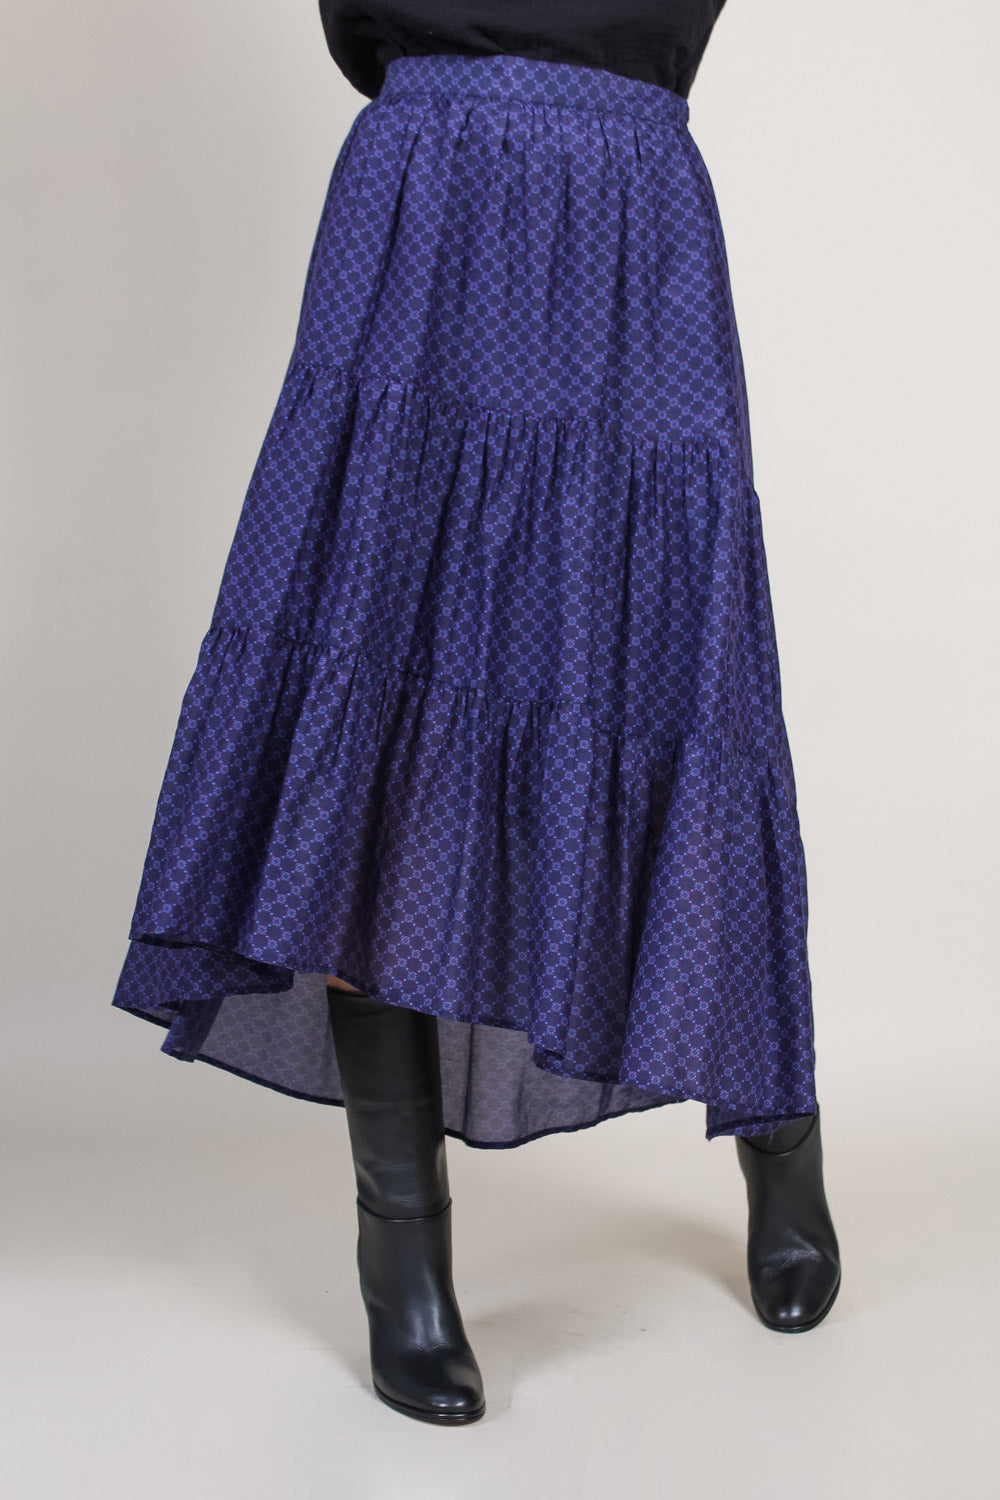 Iris Skirt in Agate Blue